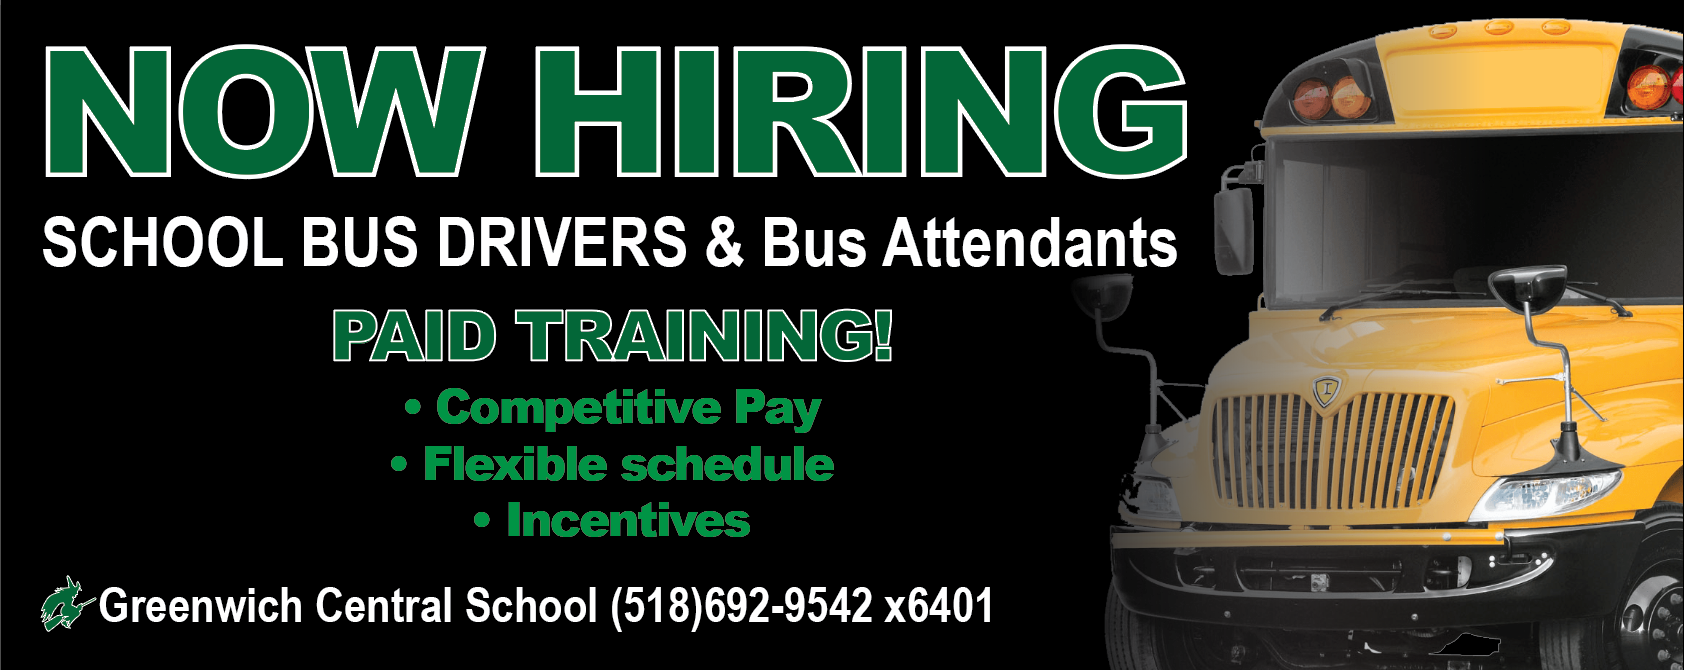 Bus Drivers Wanted graphic